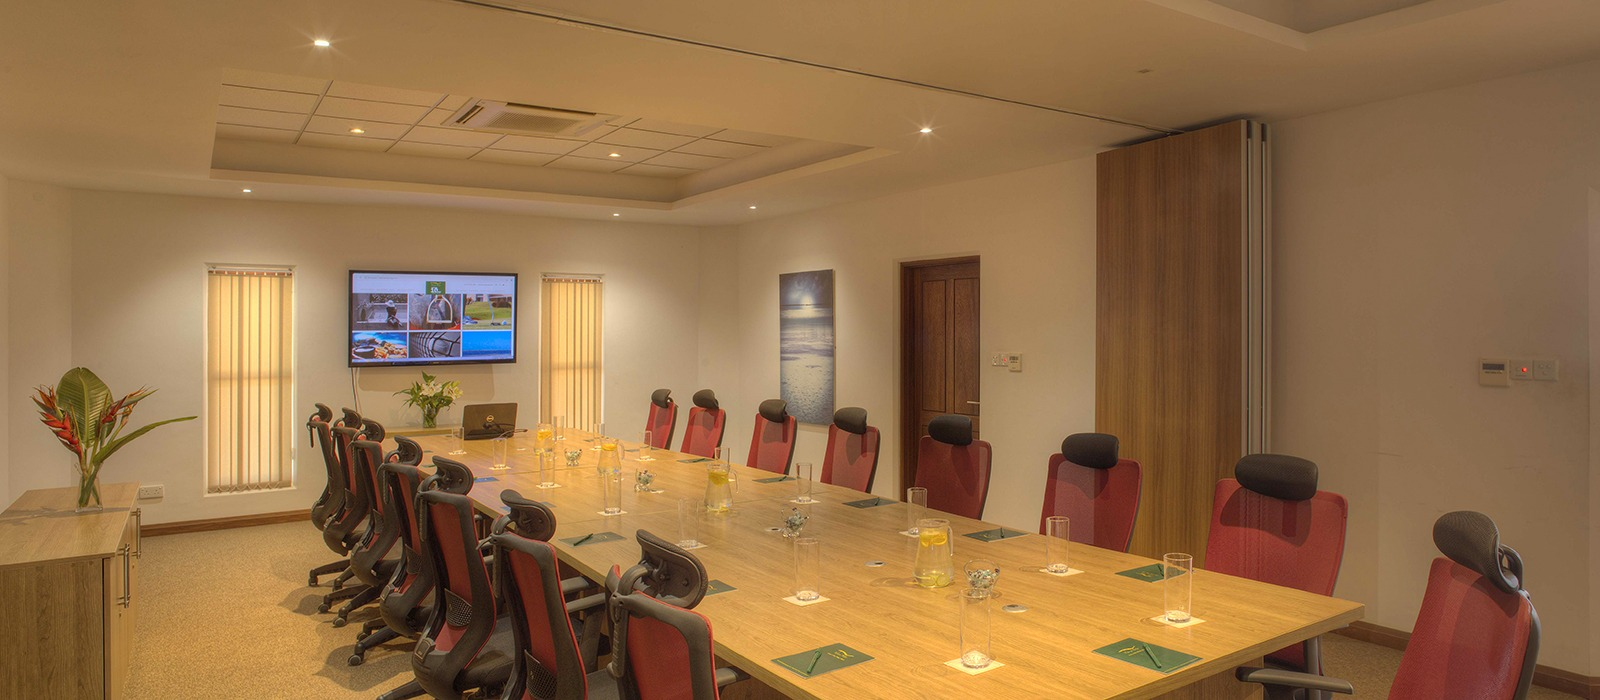 Vipingo Ridge conferencing